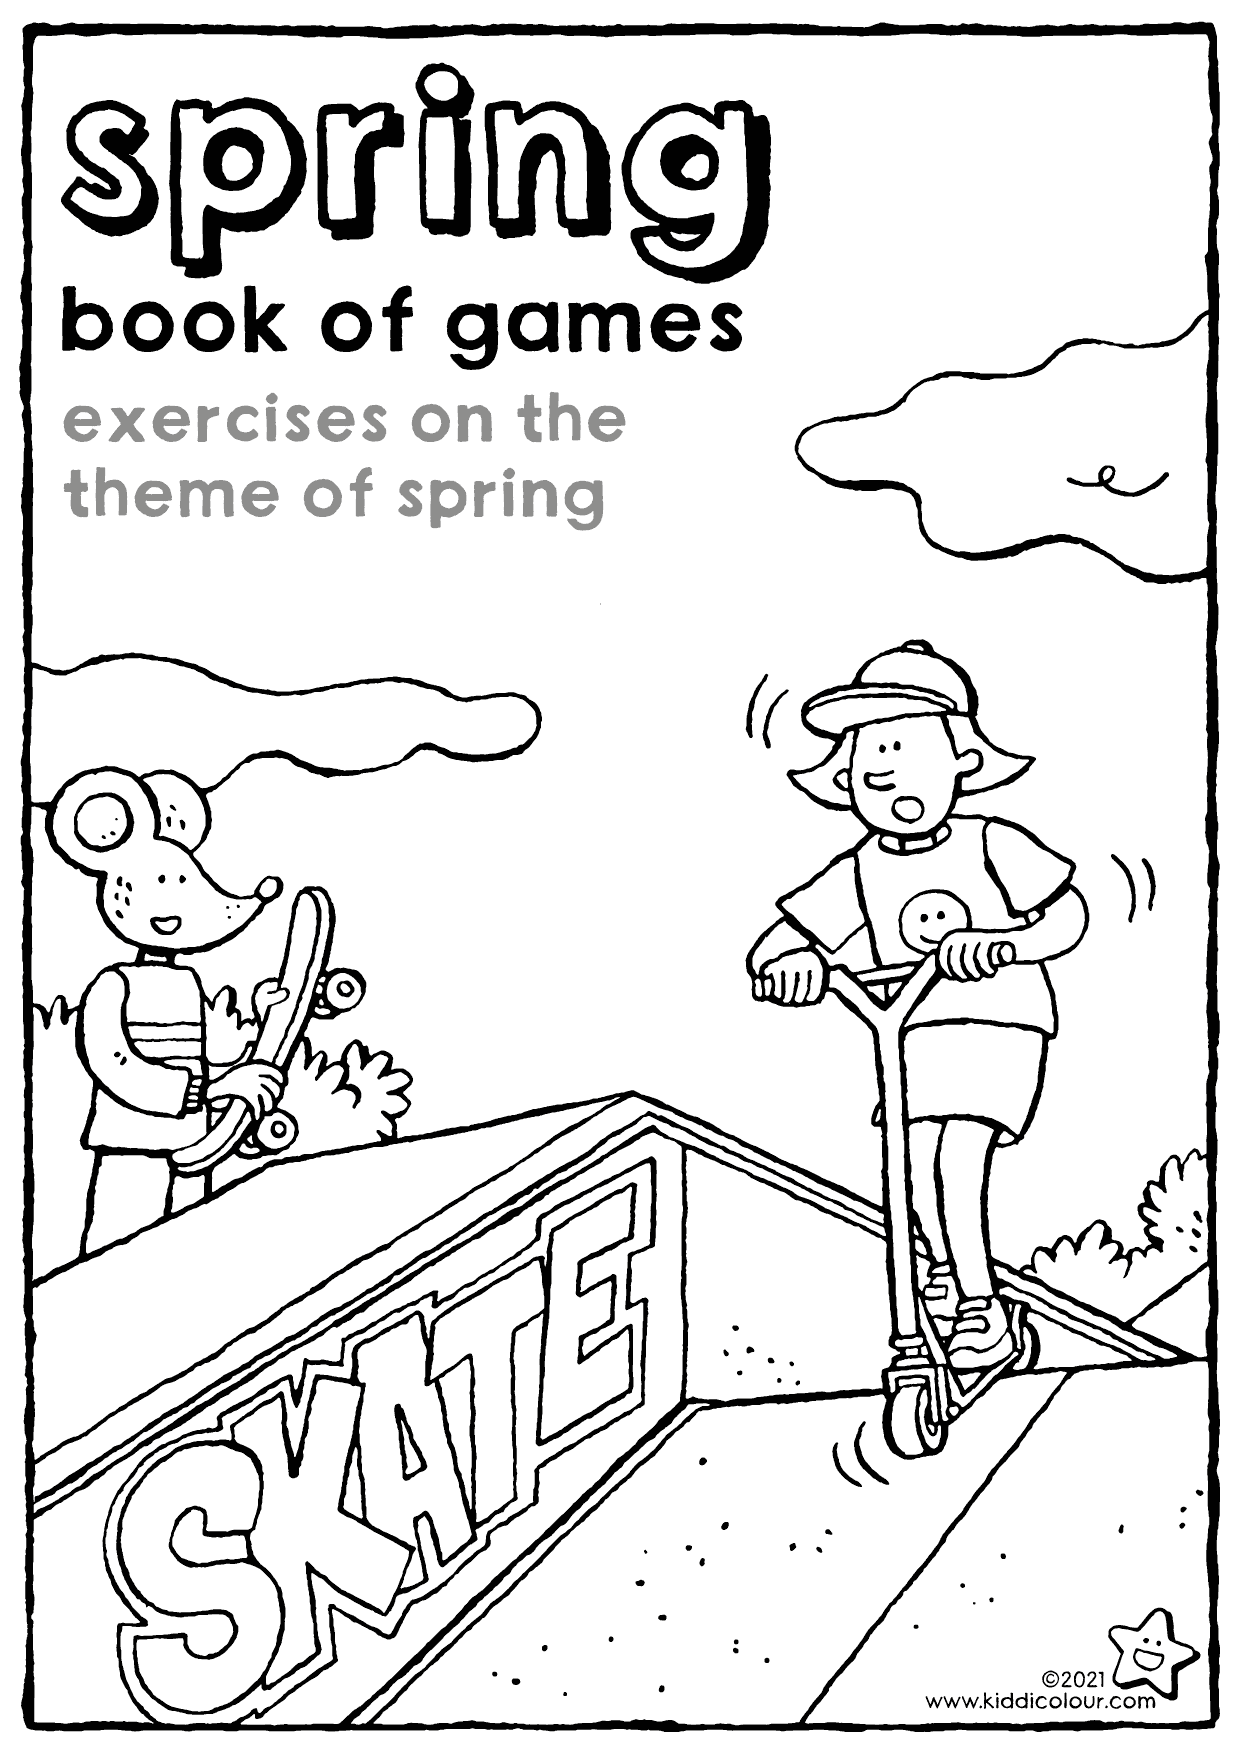 spring book of games